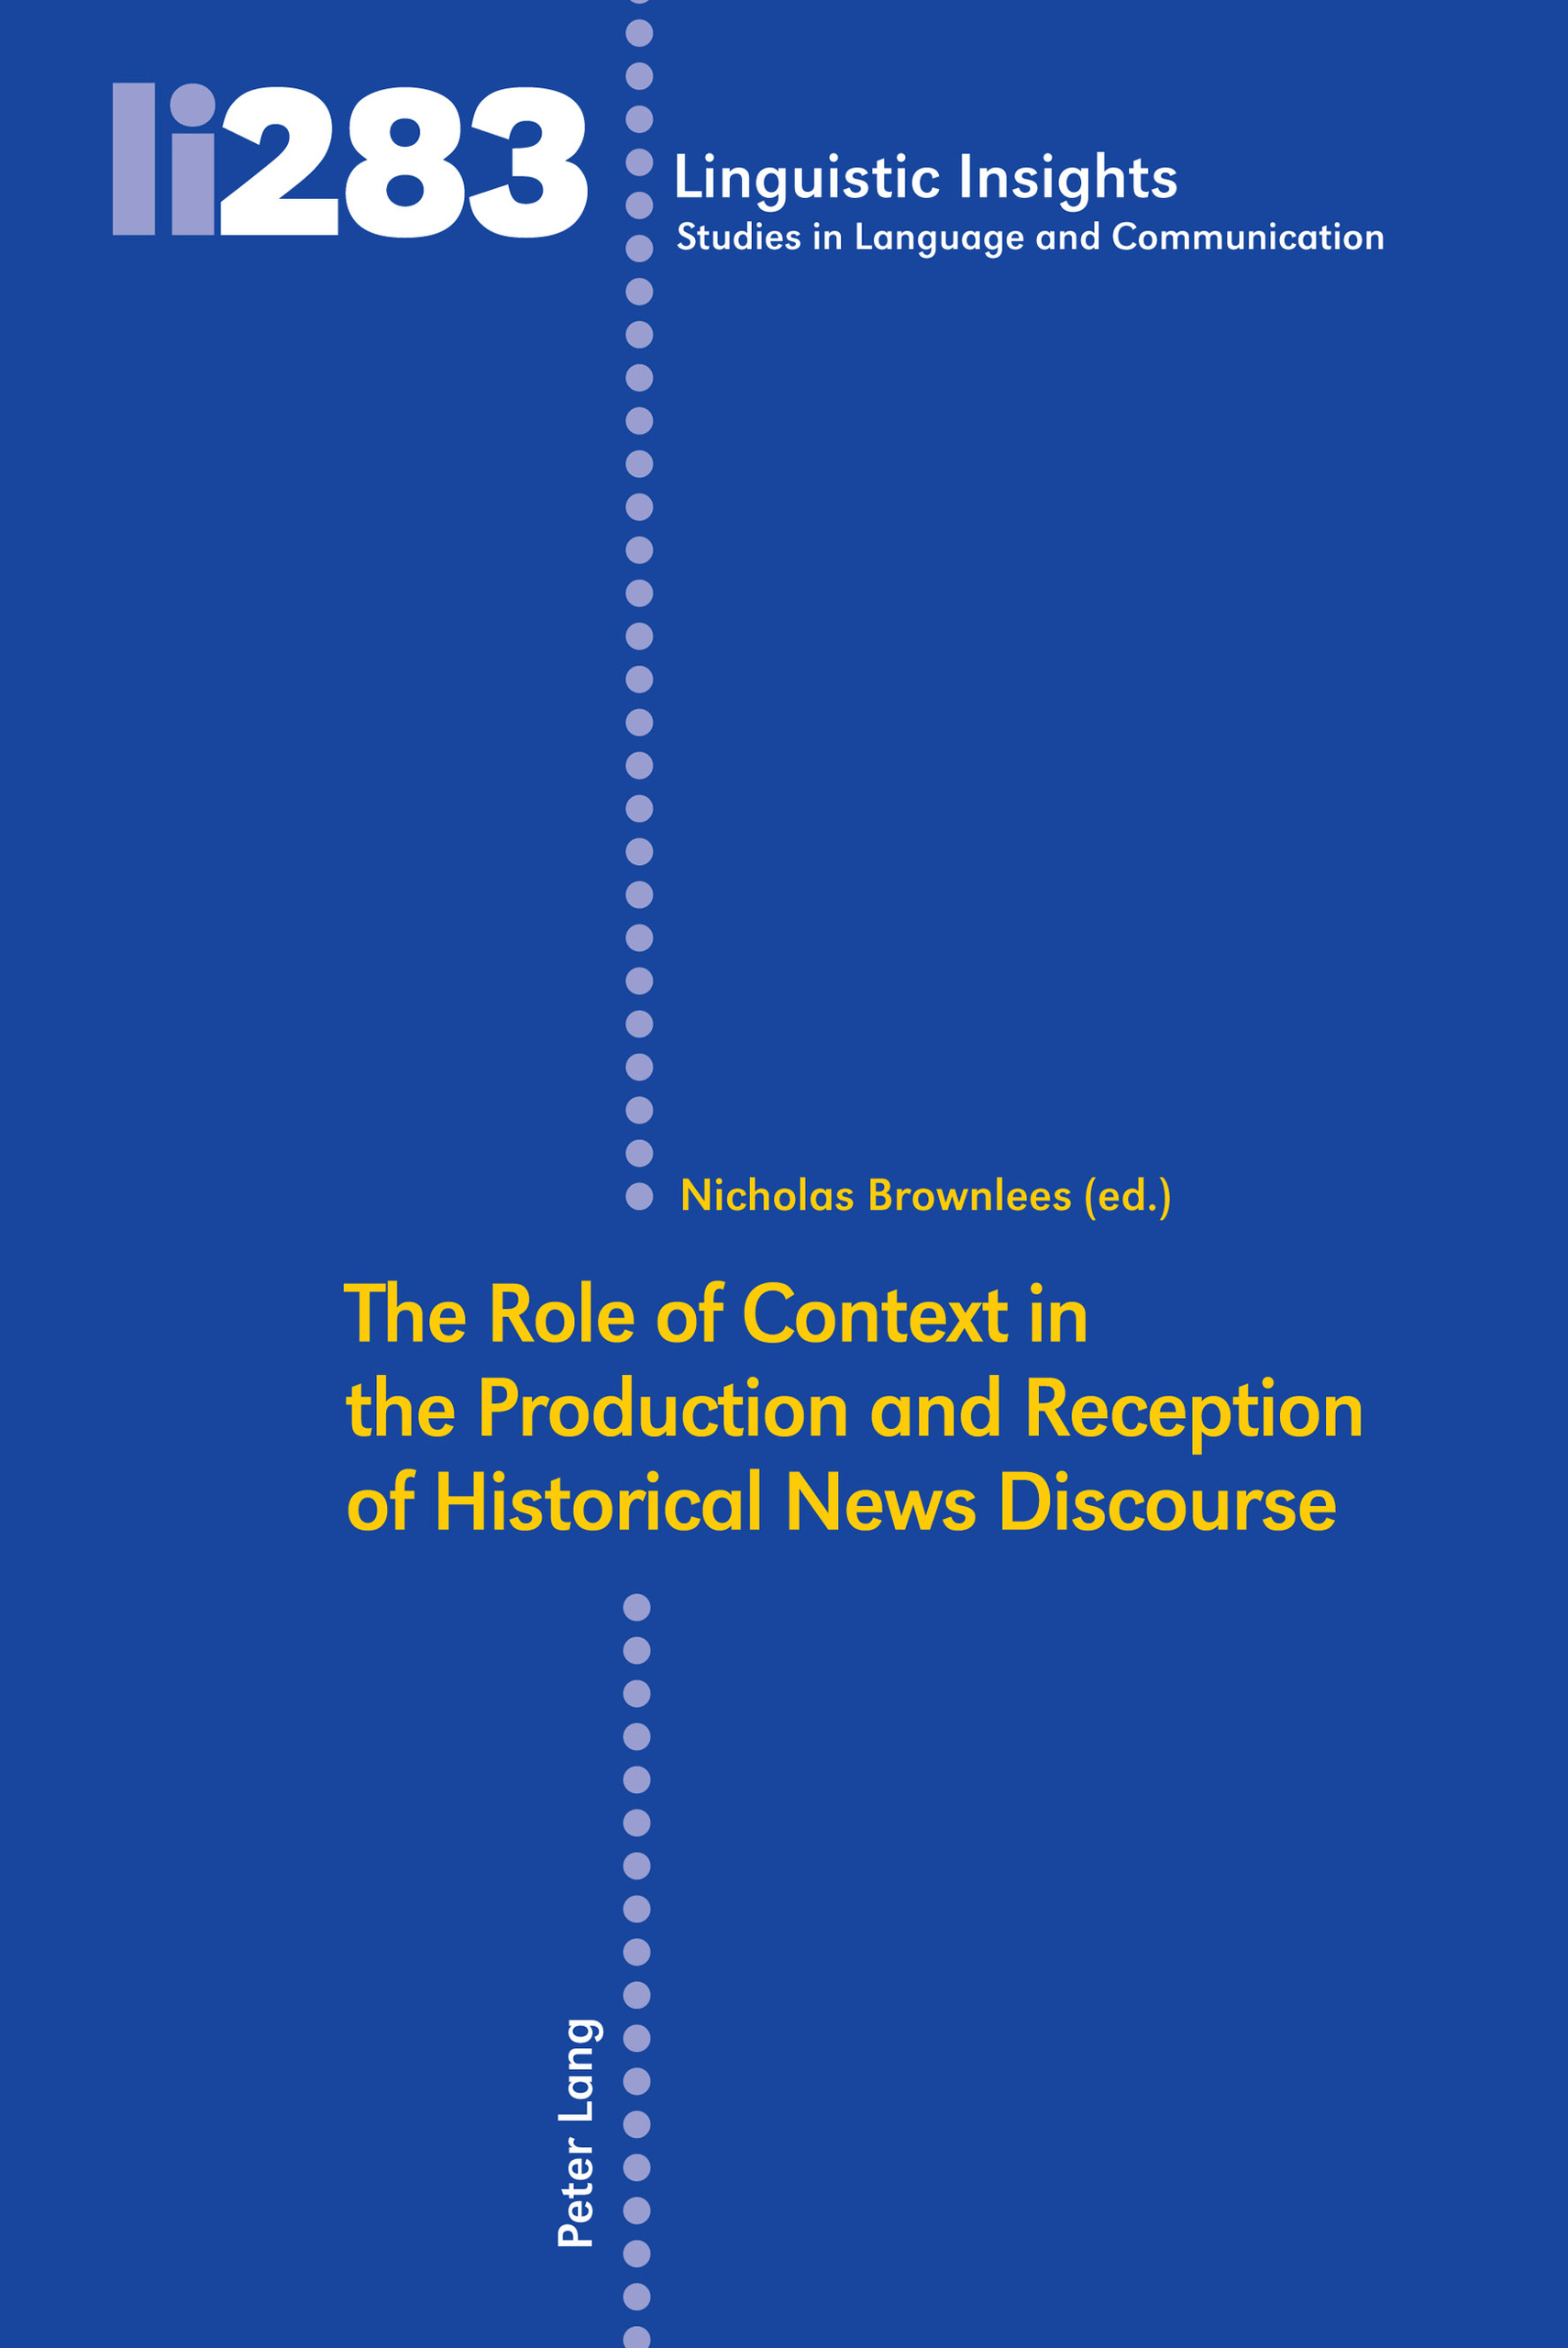 Title: The Role of Context in the Production and Reception of Historical News Discourse